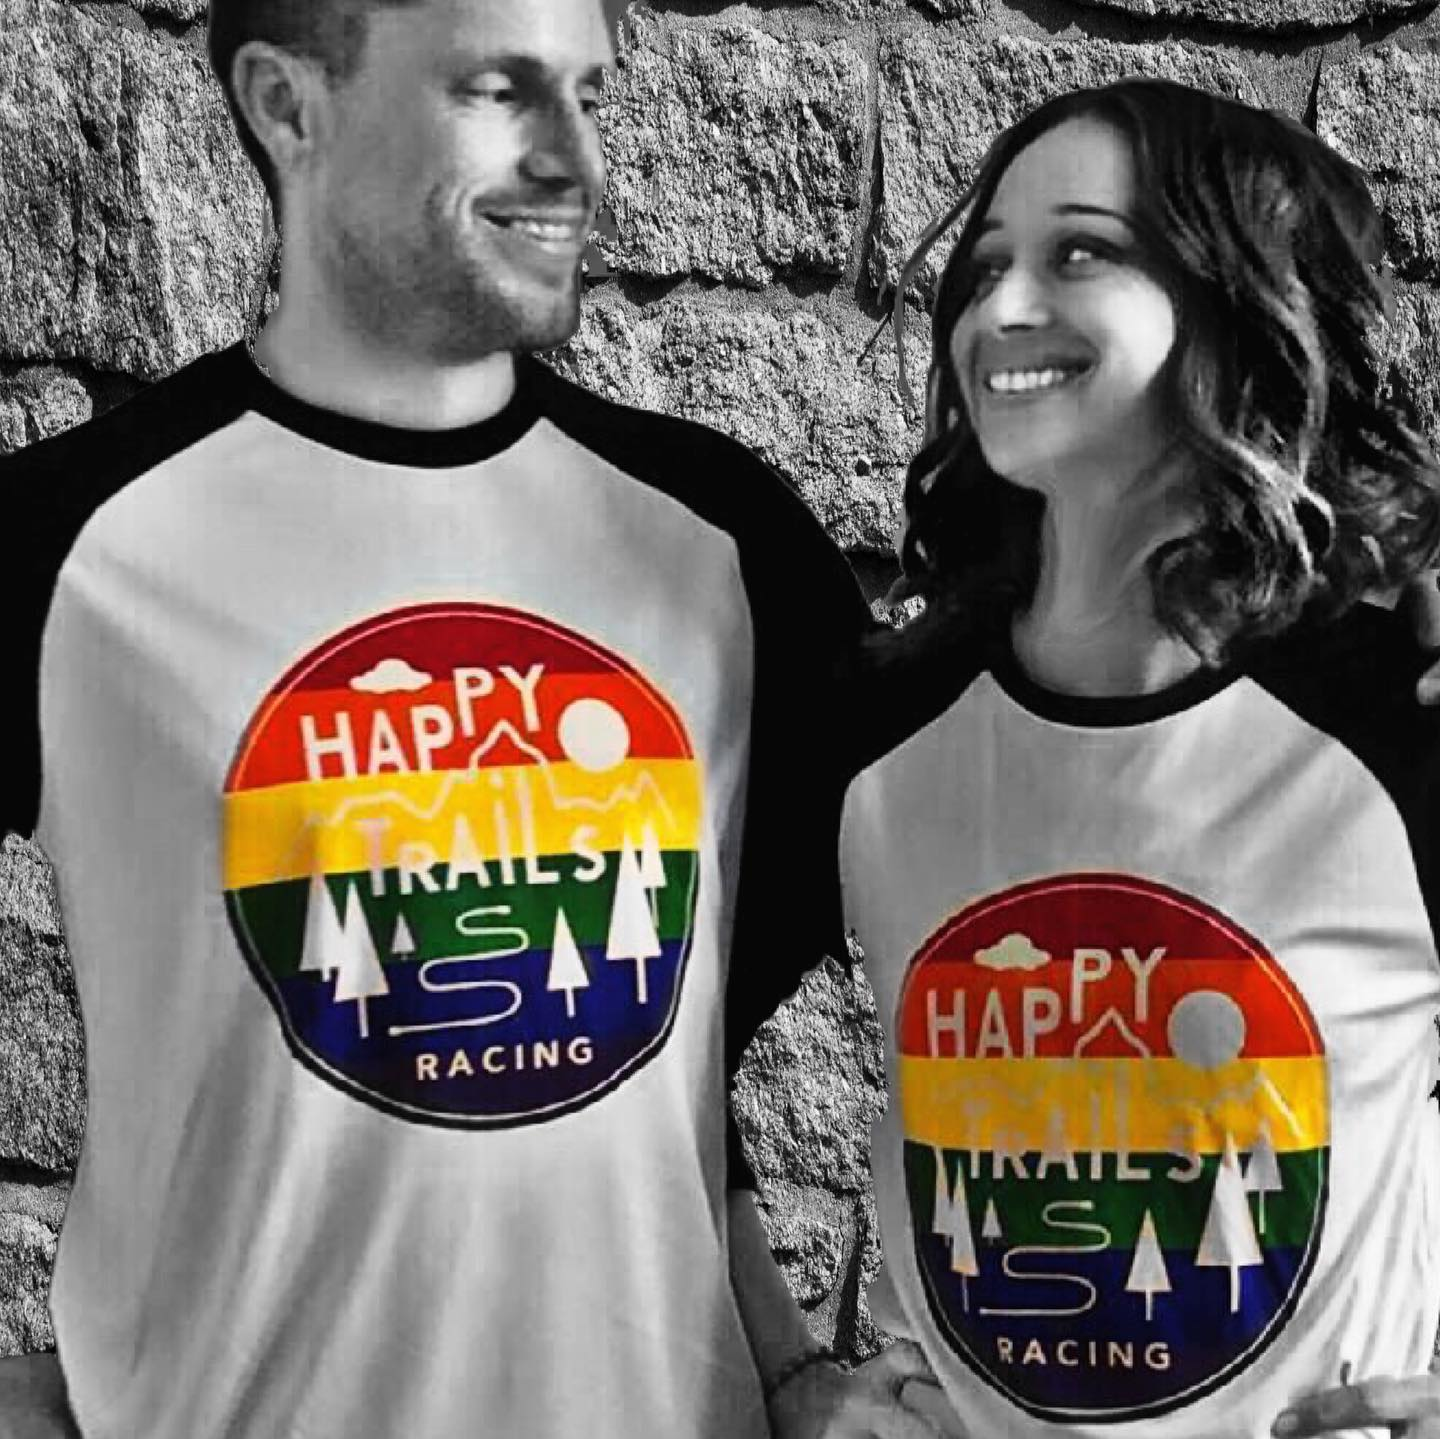 Happy Trails Racing's 2019 Pride Month shirt, designed by Heather